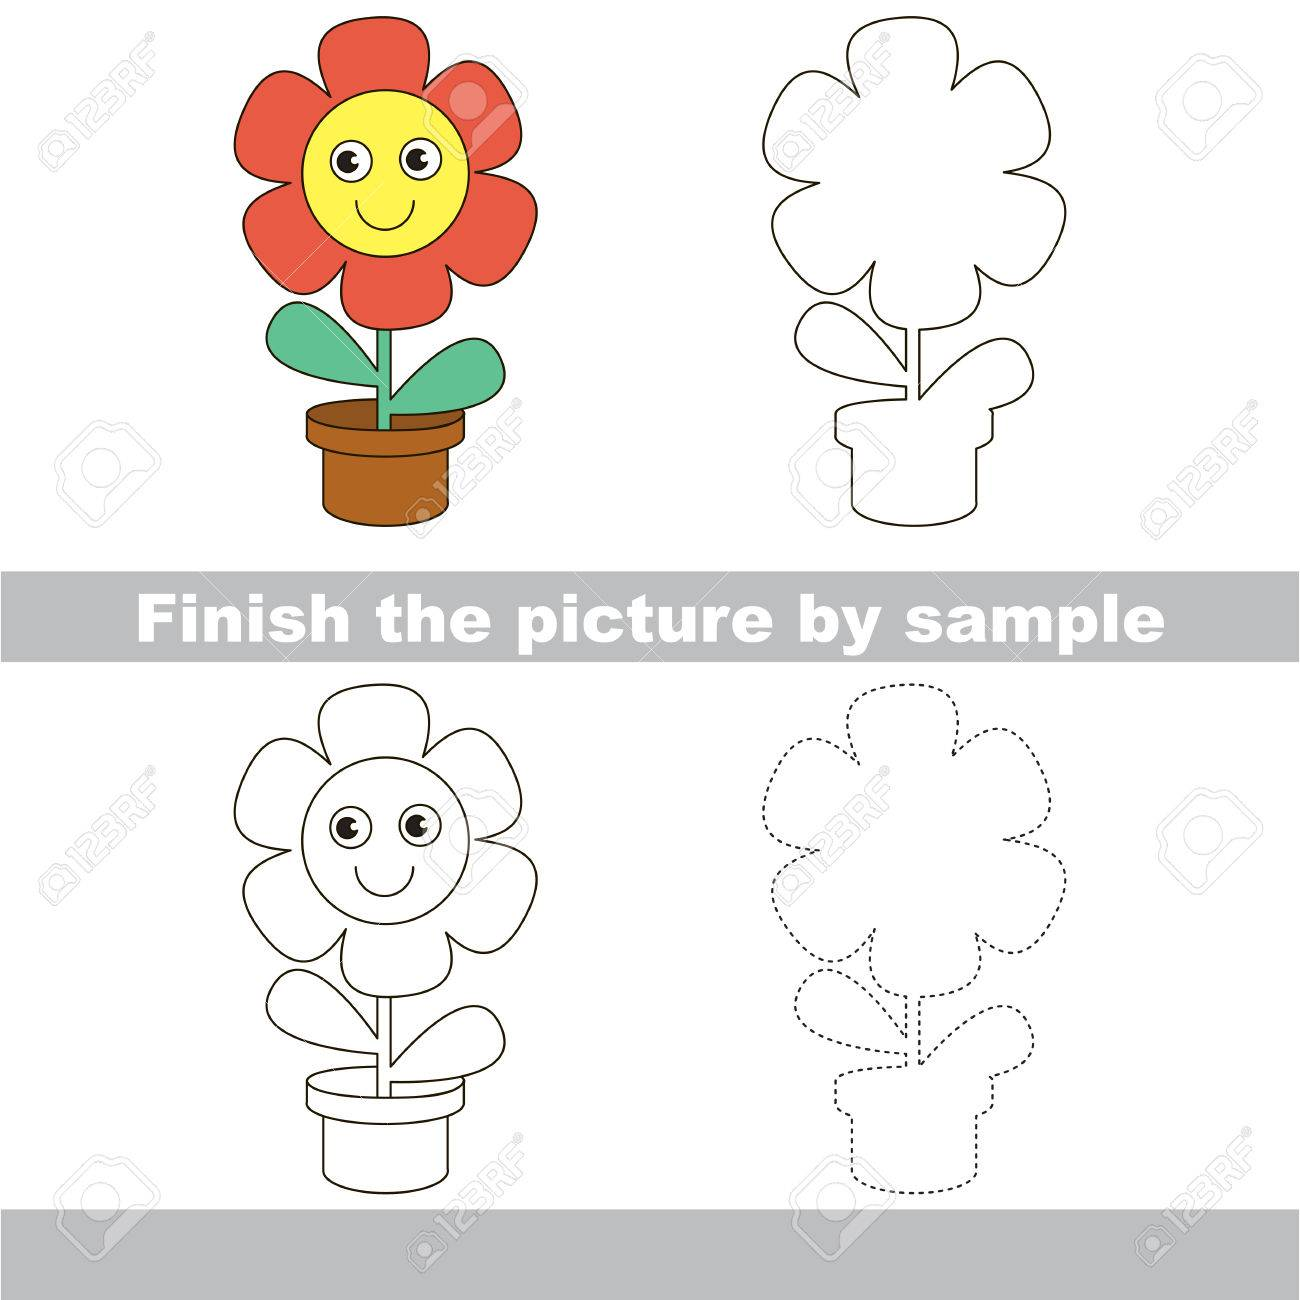 worksheet Flower Worksheet drawing worksheet for children finish the picture and draw cute flower stock vector